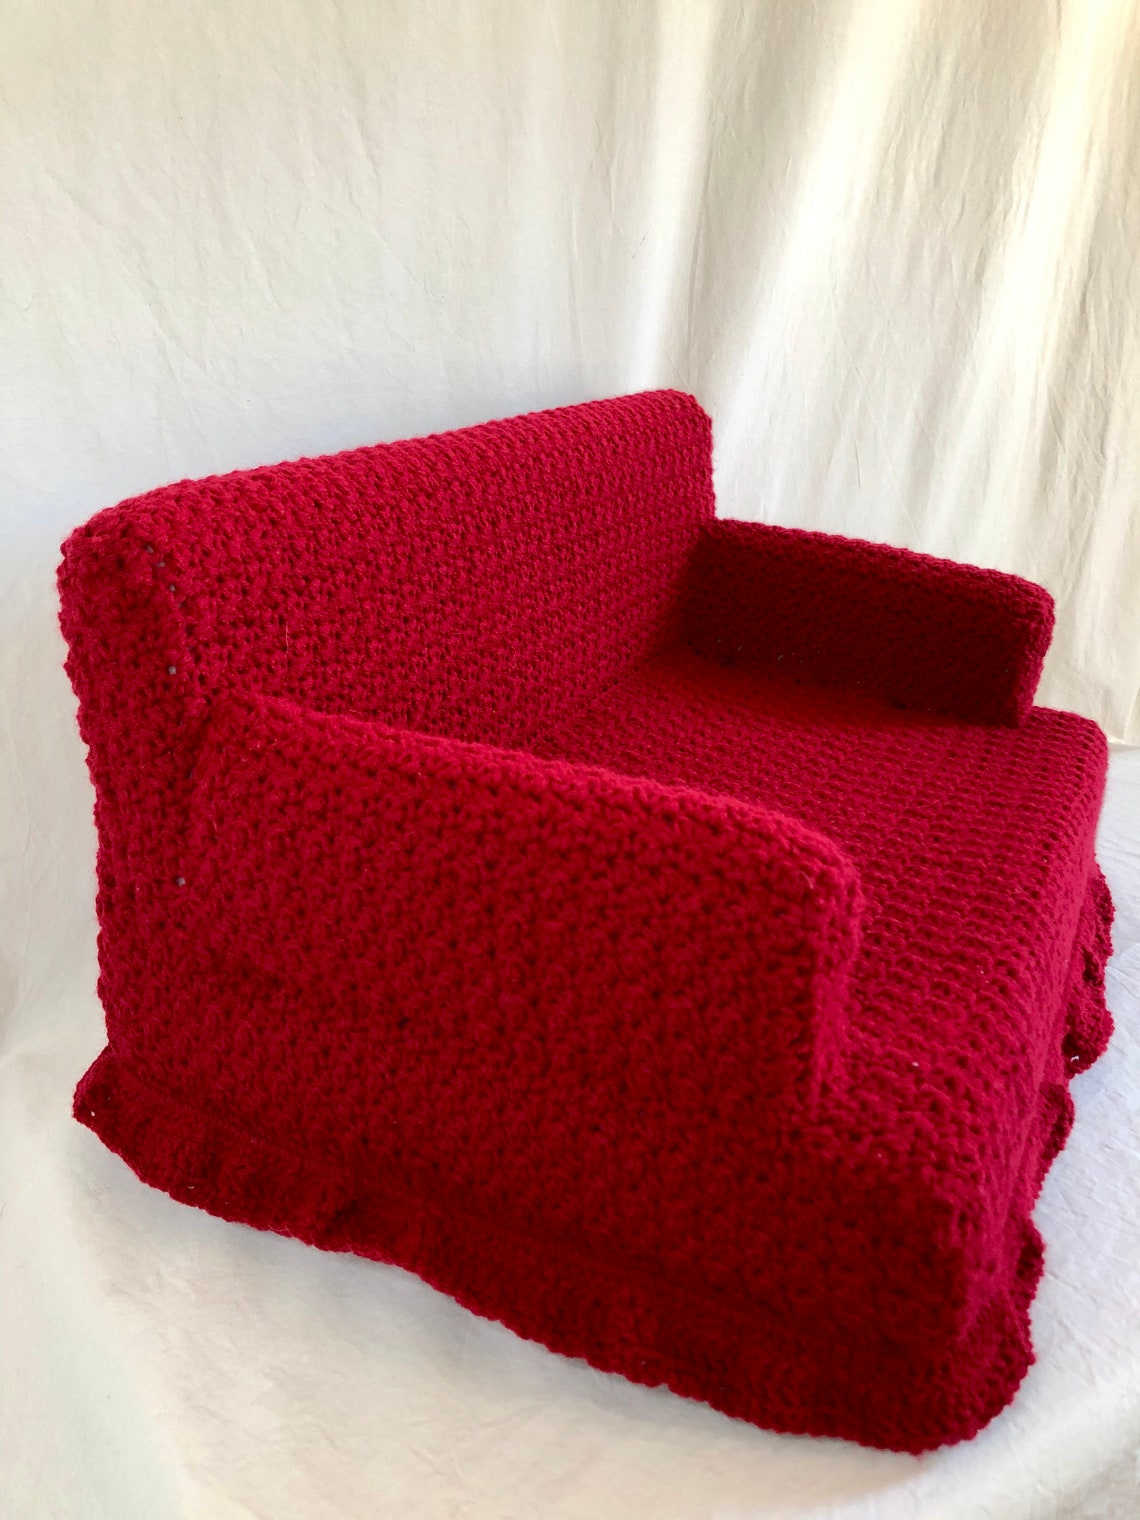 Comfy Crocheted Kitty Couch Pet Bed Made to Order image 5